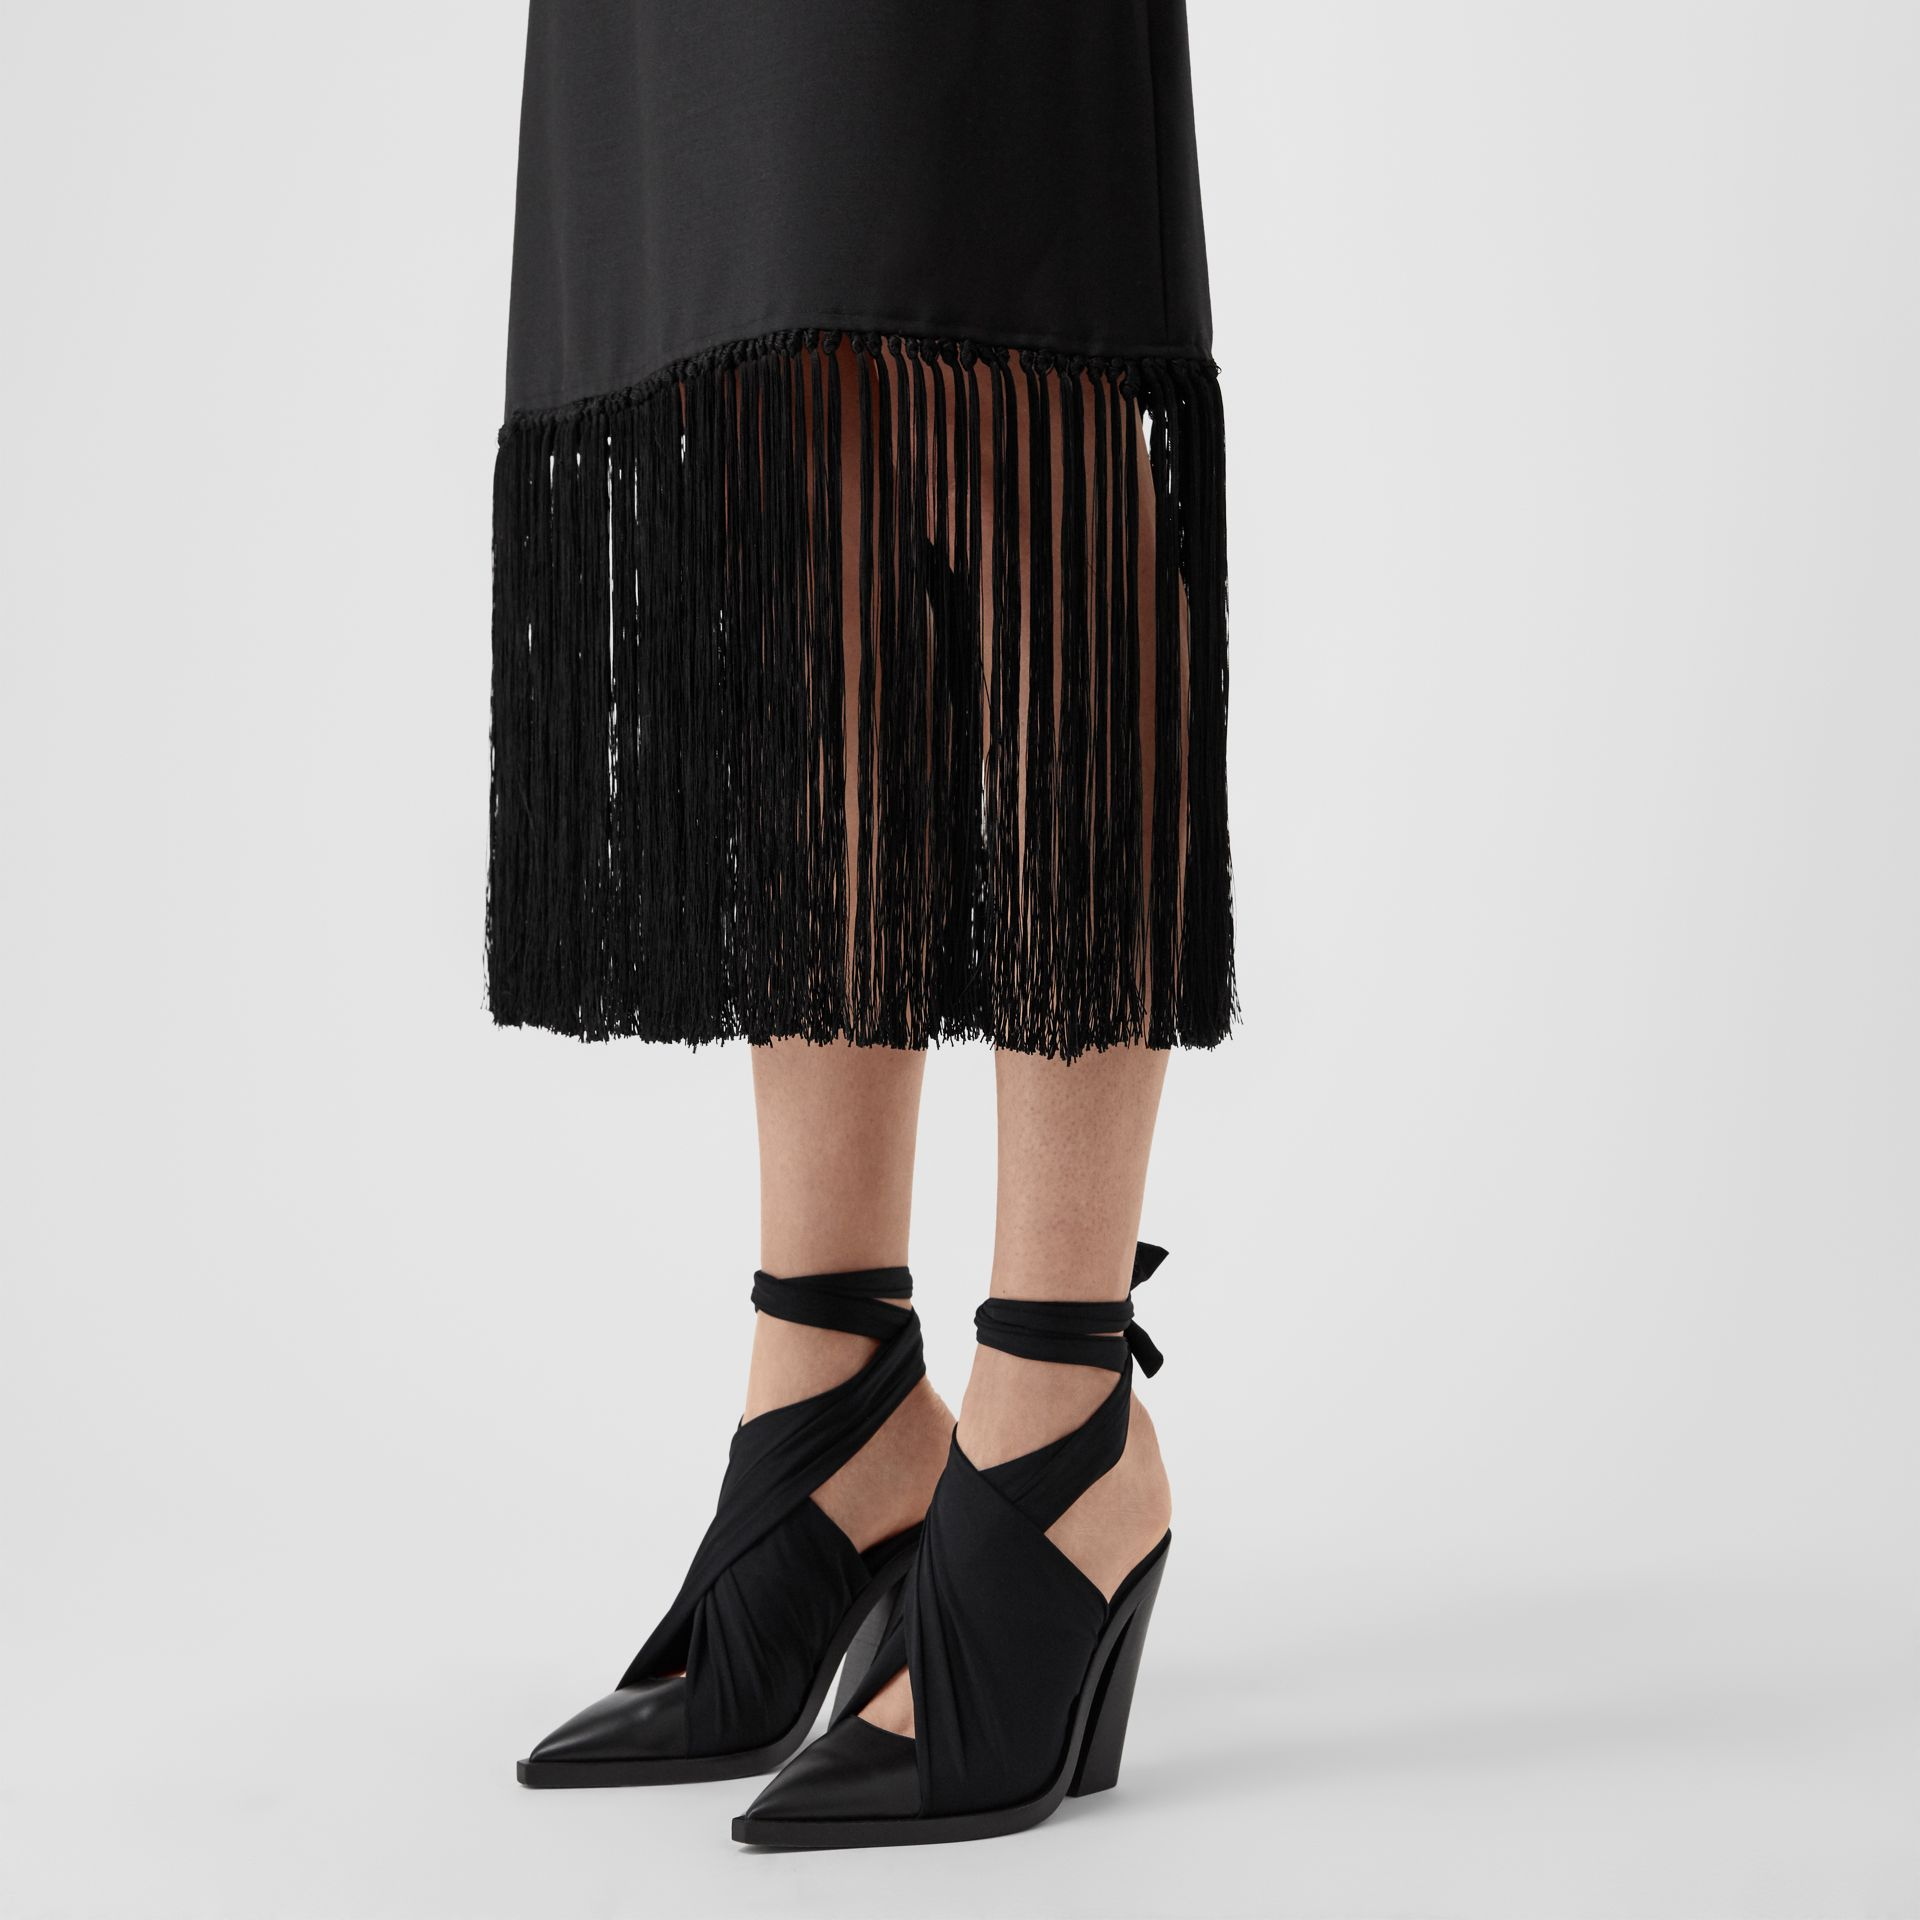 Fringed Mohair Wool A-line Skirt in Black - Women | Burberry Australia - gallery image 5